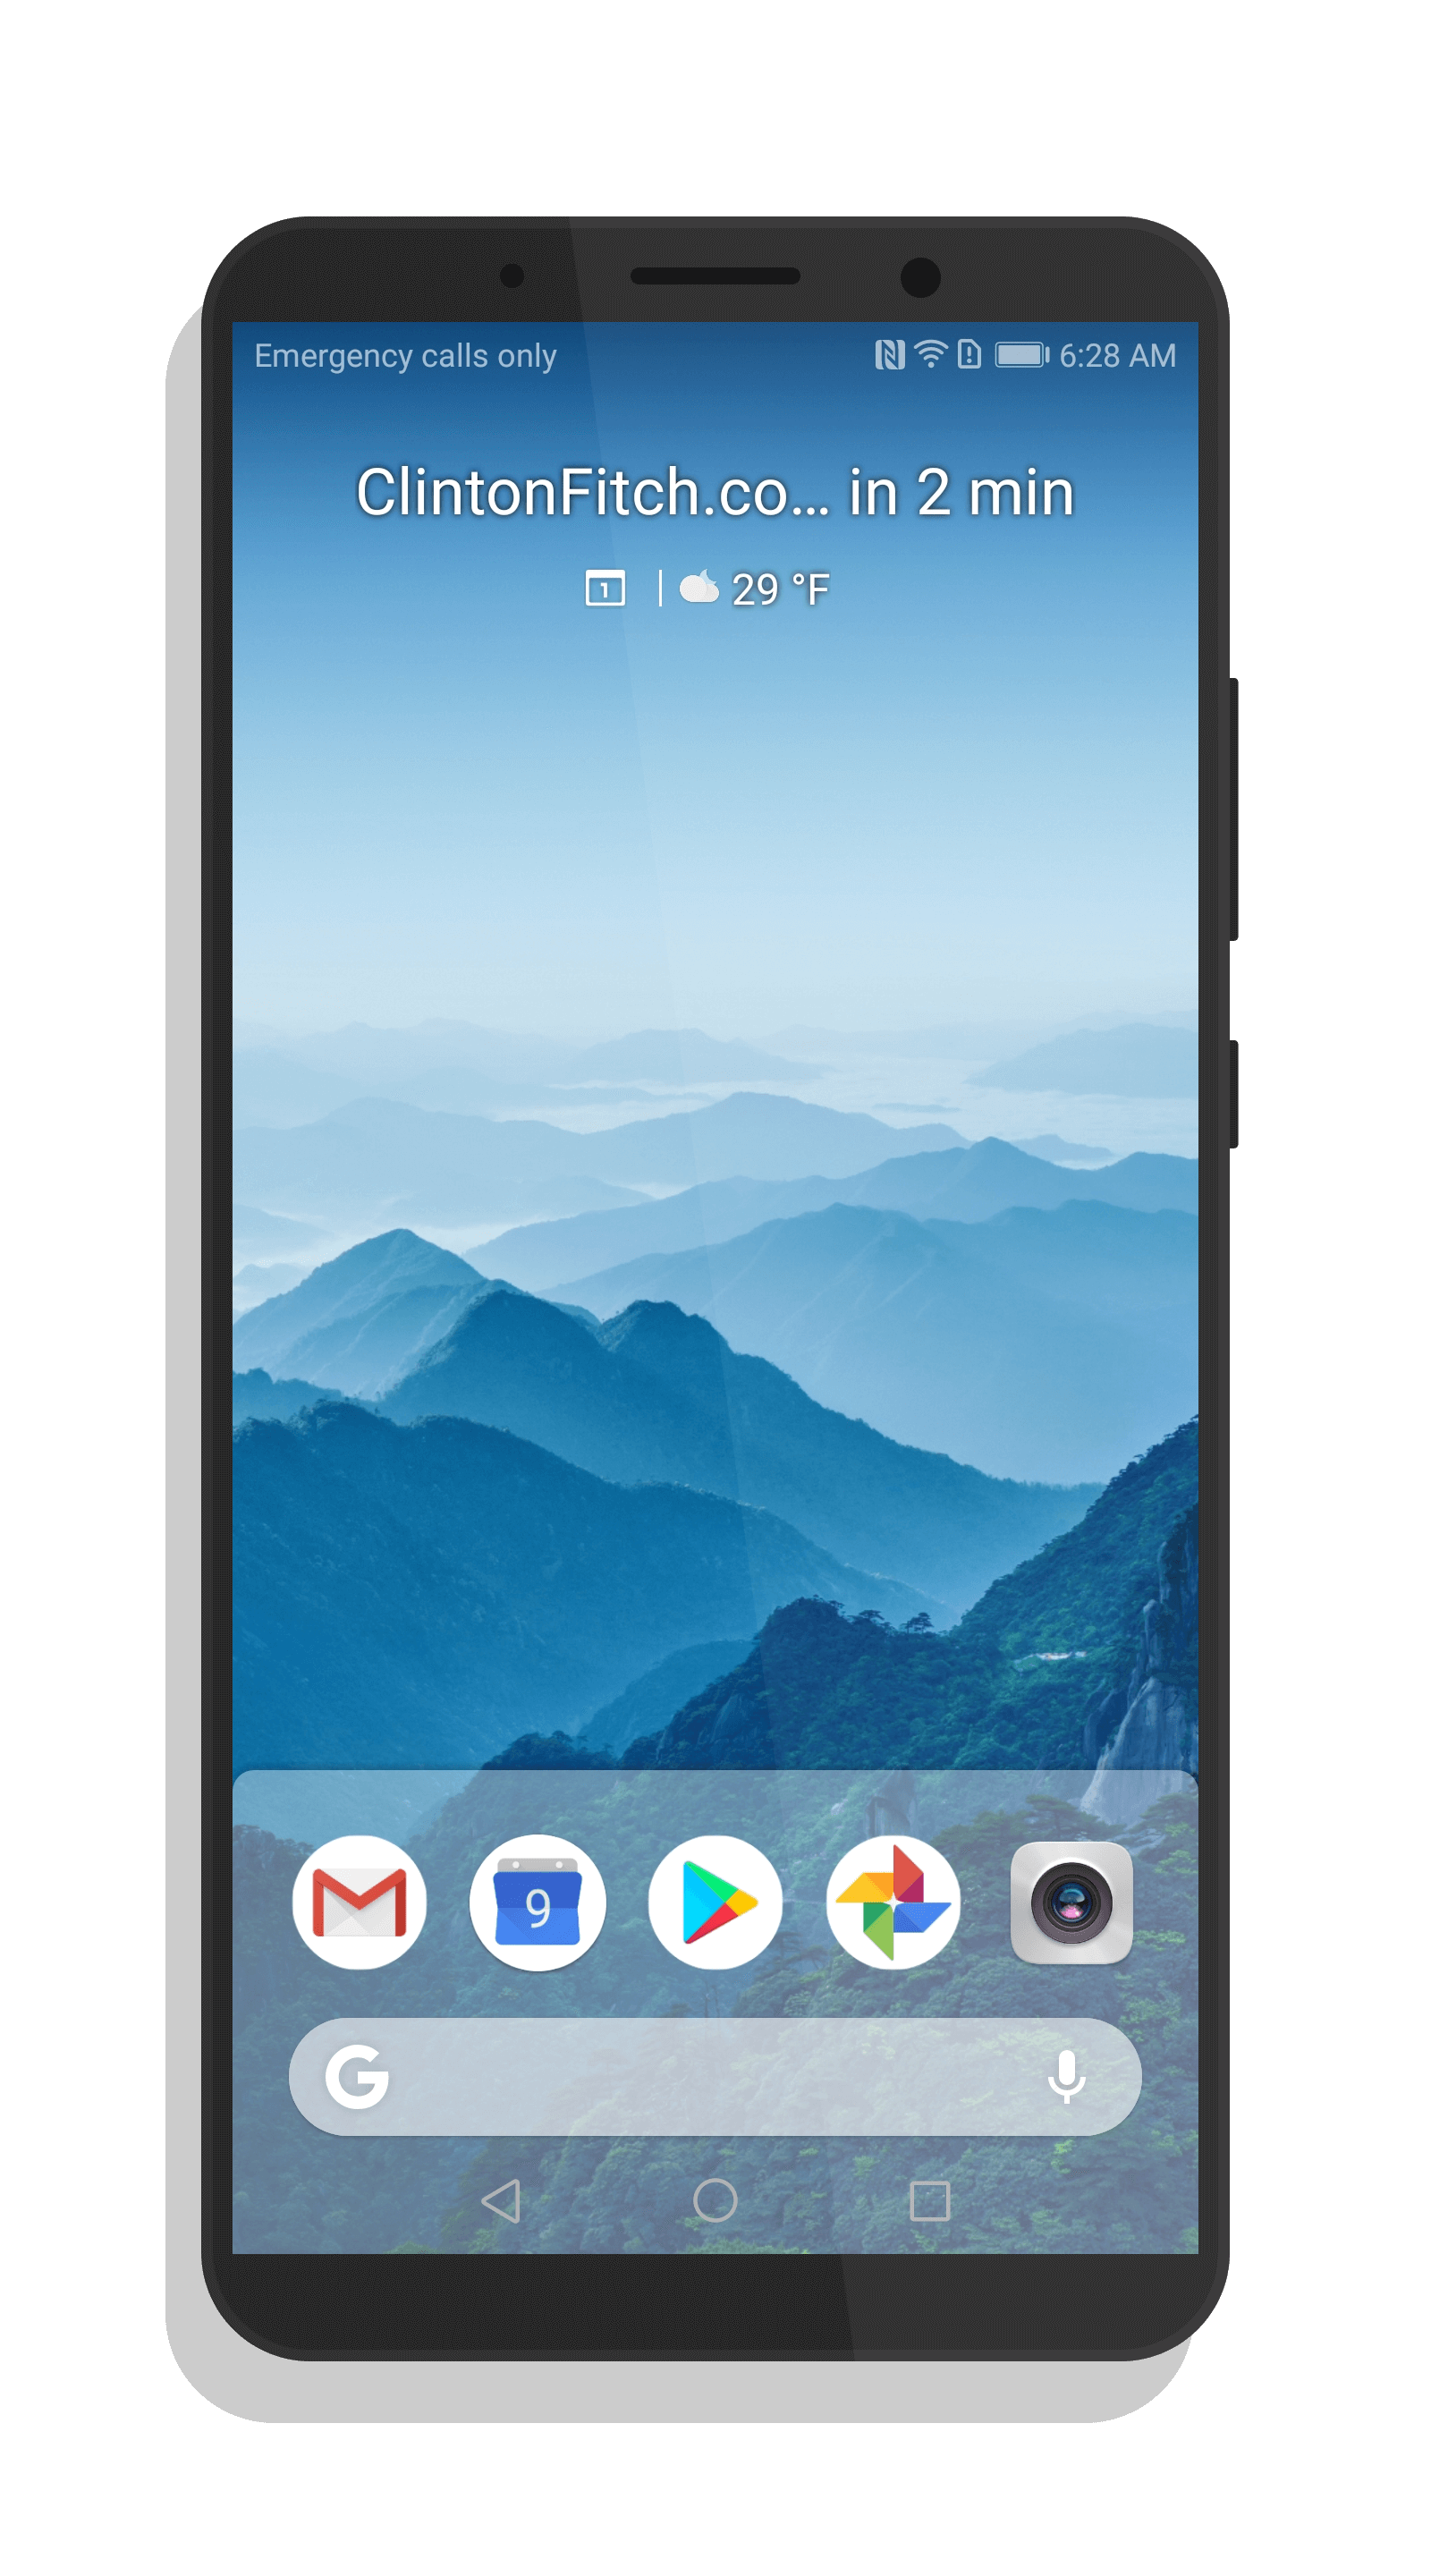 Transparent launcher screenshot. Download the android p